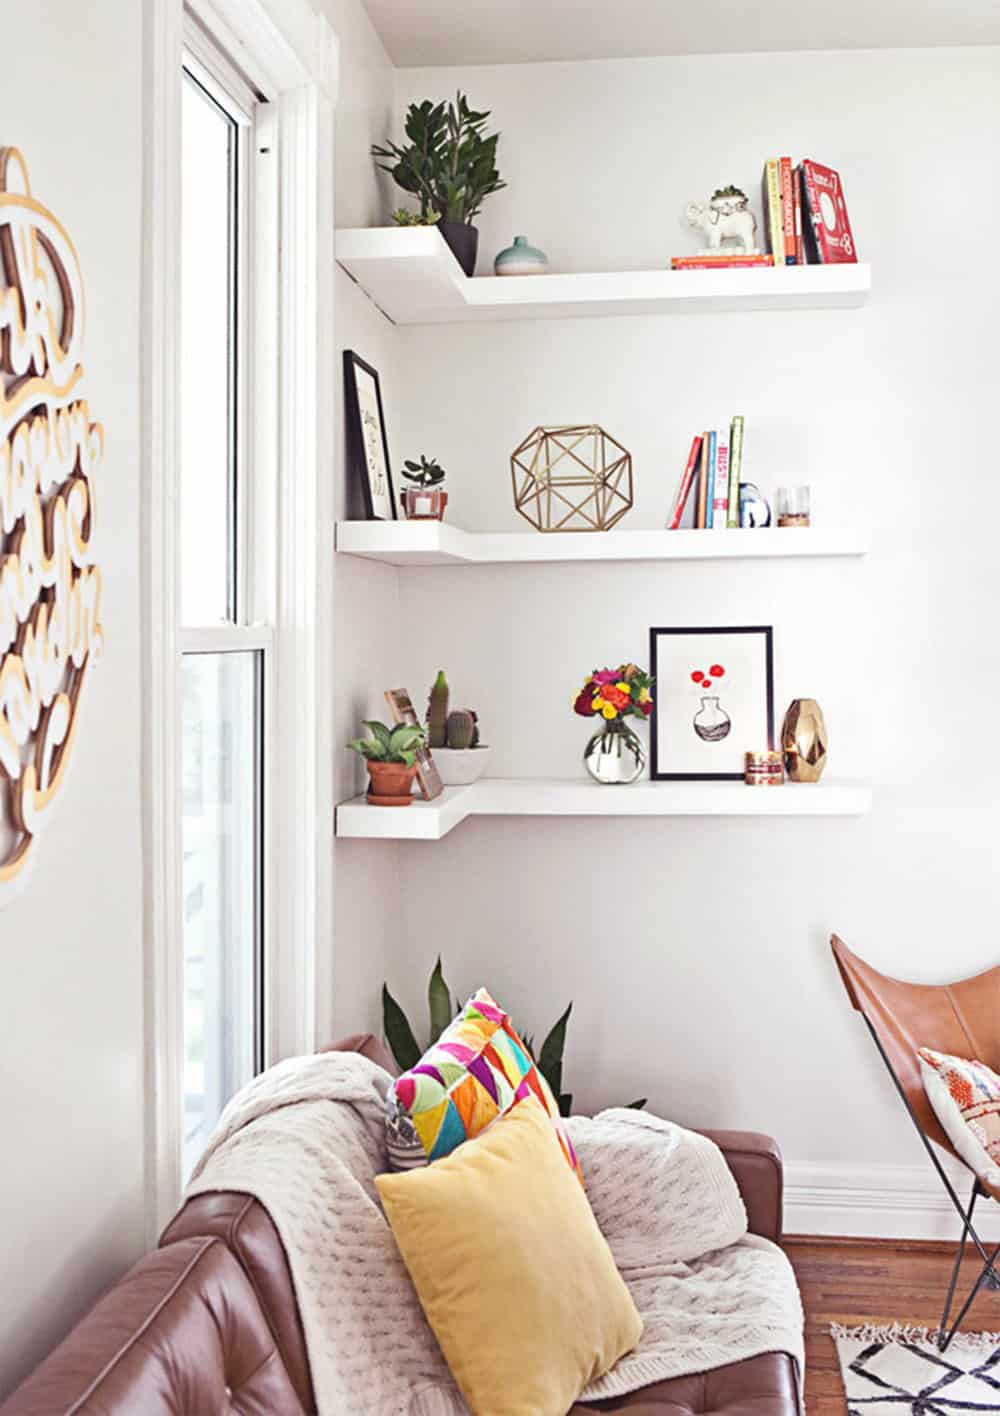 DIY Floating Shelves Can Transform A Room